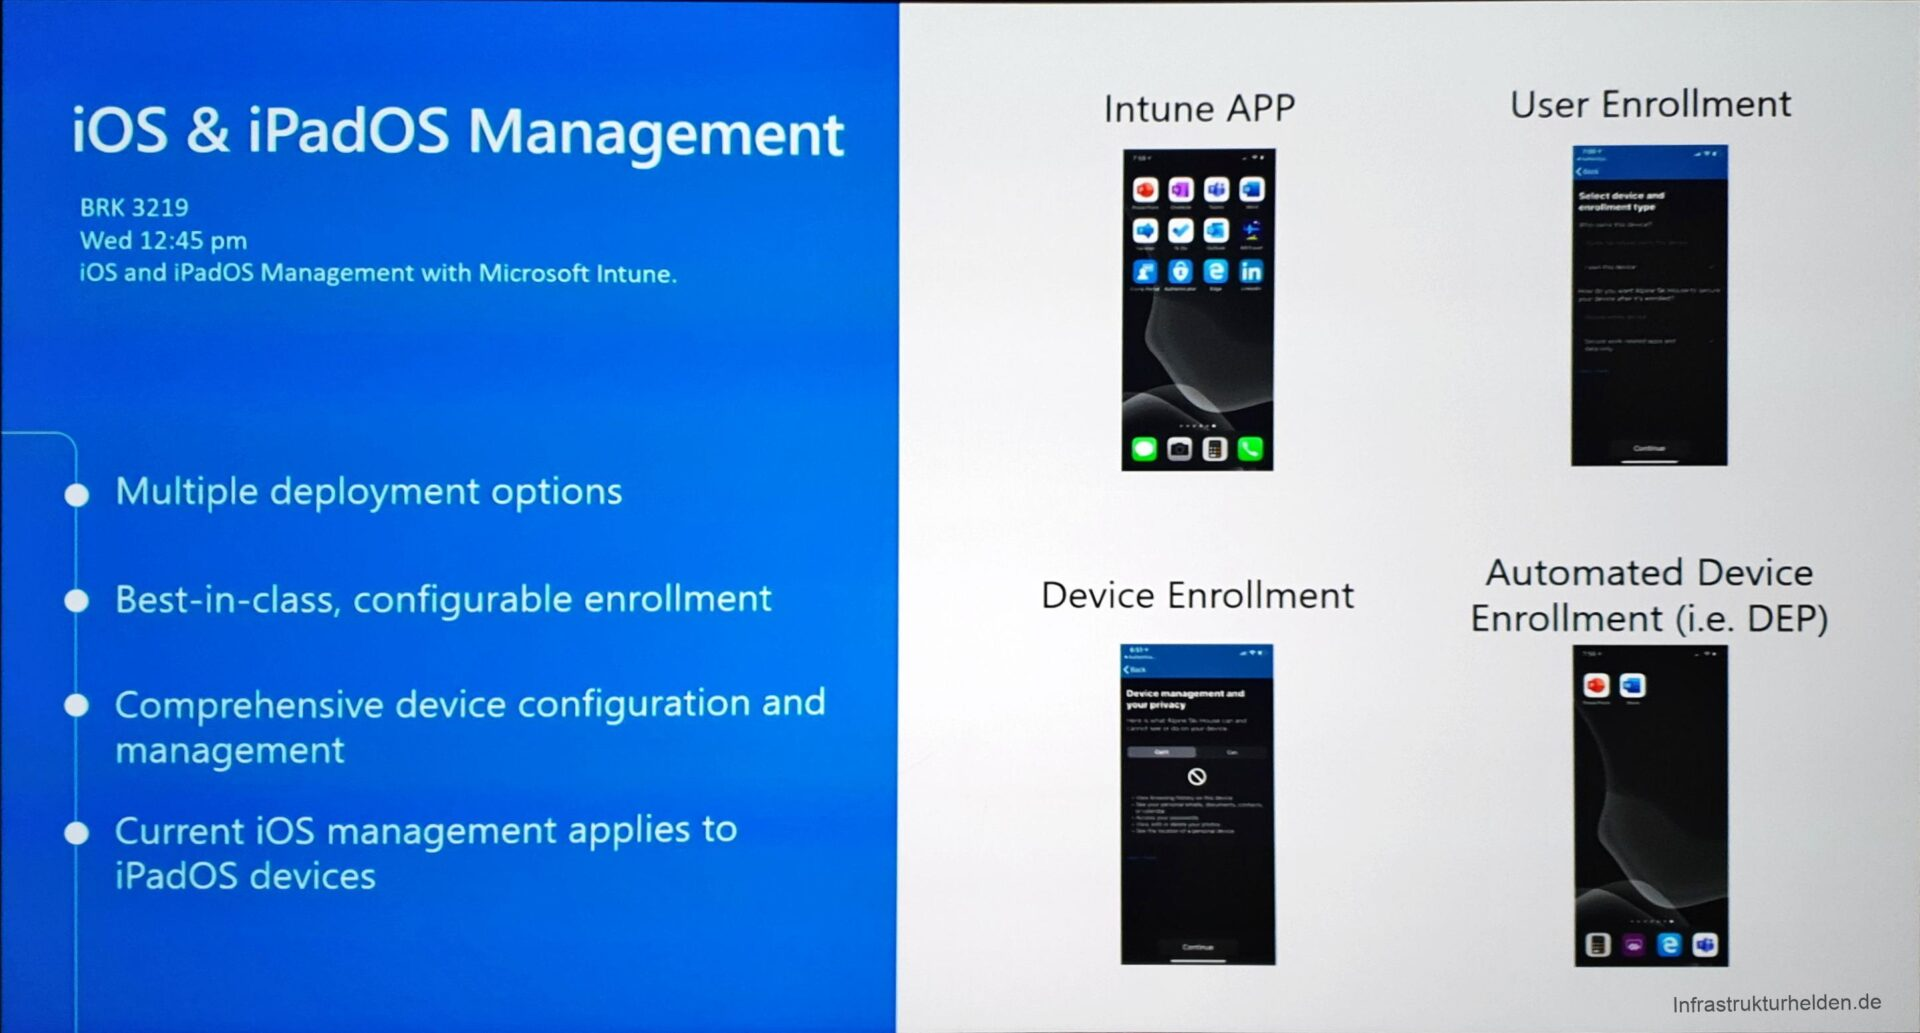 Computergenerierter Alternativtext: iOS & iPadOS Management BRK 3219 Wed 12:45 pm iOS and iPadOS Management With Microsoft Intune. e Multiple deployment options Best-in-class, configurable enrollment Comprehensive device configuration and management e Current iOS management applies to iPadOS devices Intune APP 0000 oeo —oog Device Enrollment User Enrollment Automated Device Enrollment (i.e. DEP)